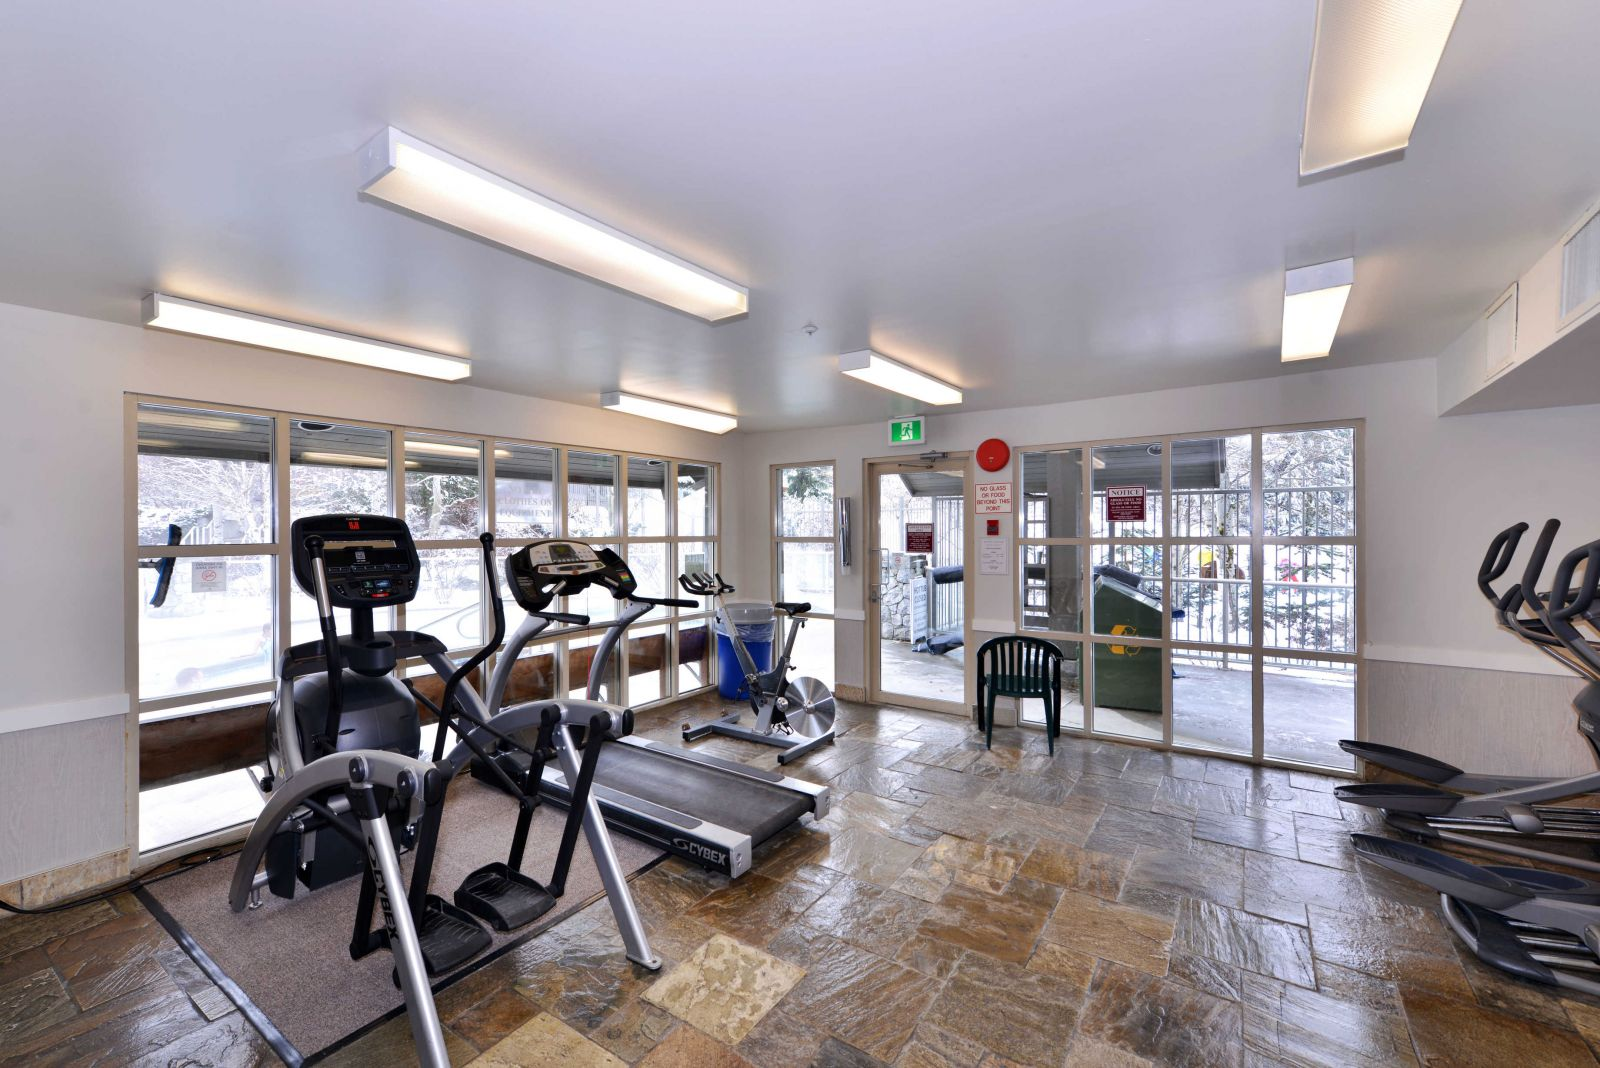 Aspens Lodge workout facility